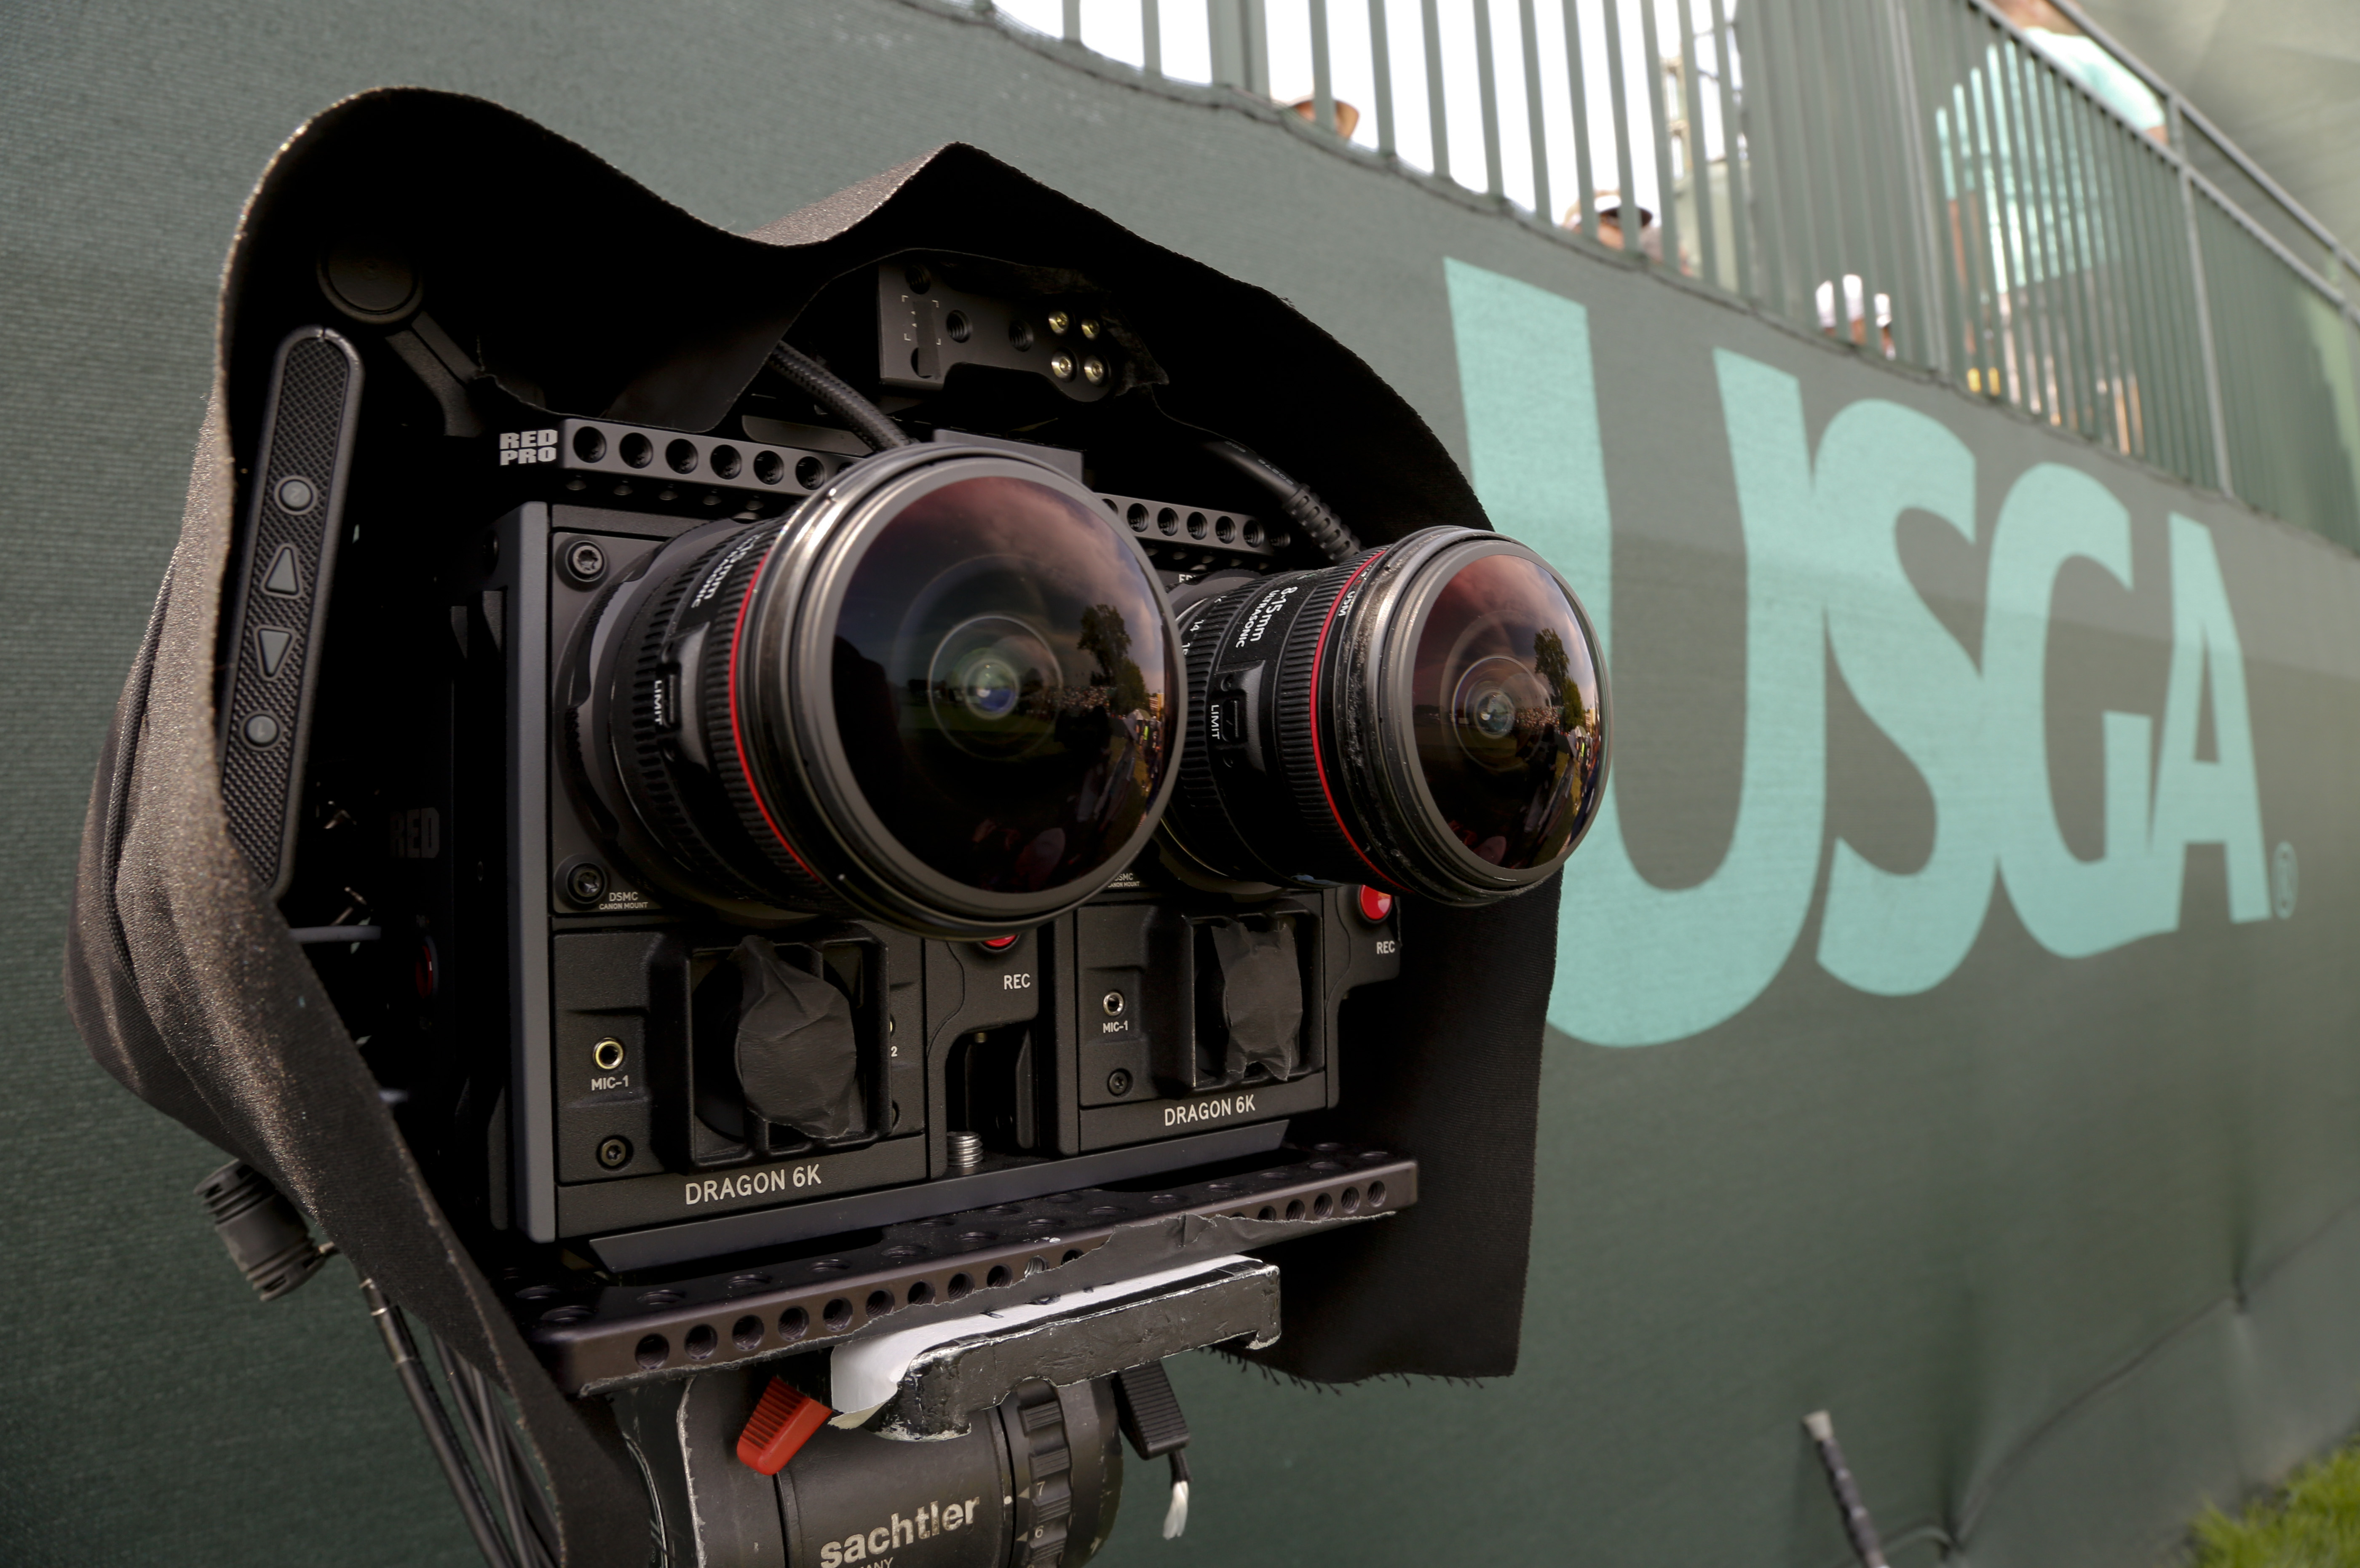 High-definition VR cameras are set up on the 18th tee during a practice round for the U.S. Open golf championship at Oakmont Country Club on Wednesday, June 15, 2016, in Oakmont, Pa. As part of Foxs five-year deal with NextVR, cameras at Oakmont will be p